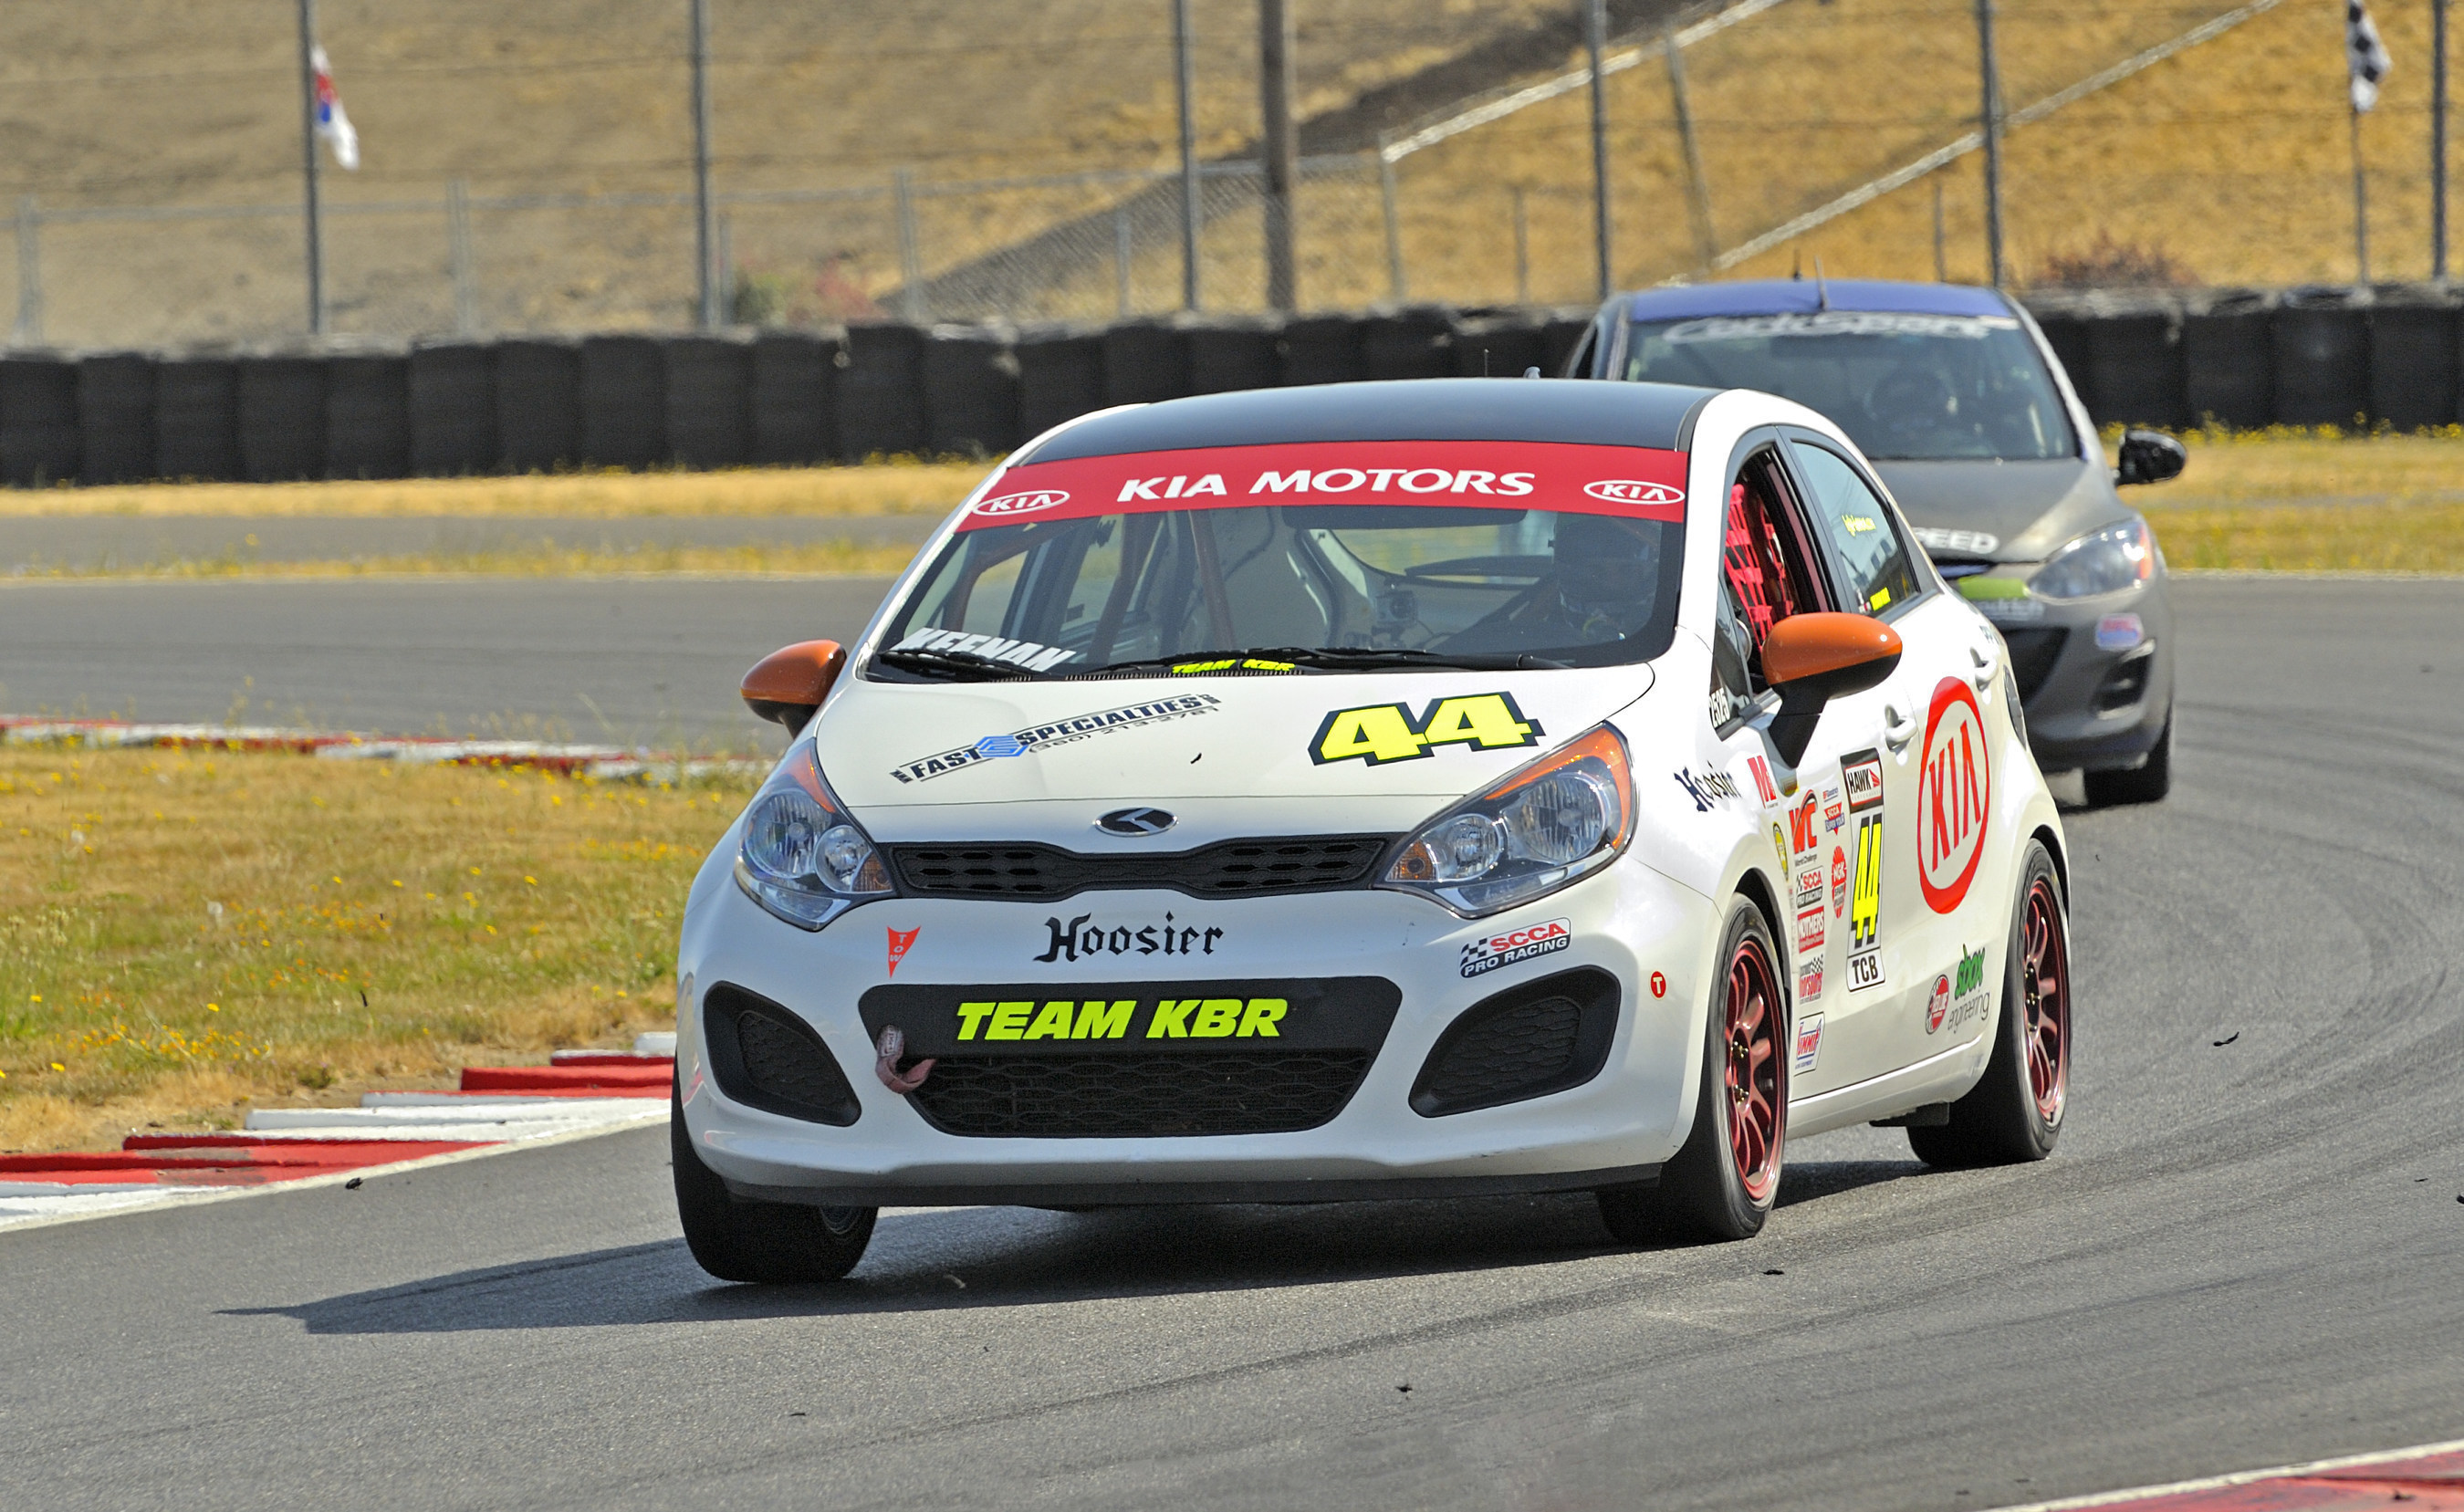 Kia Racing's grassroot efforts continue to outperform competition with back-to-back wins